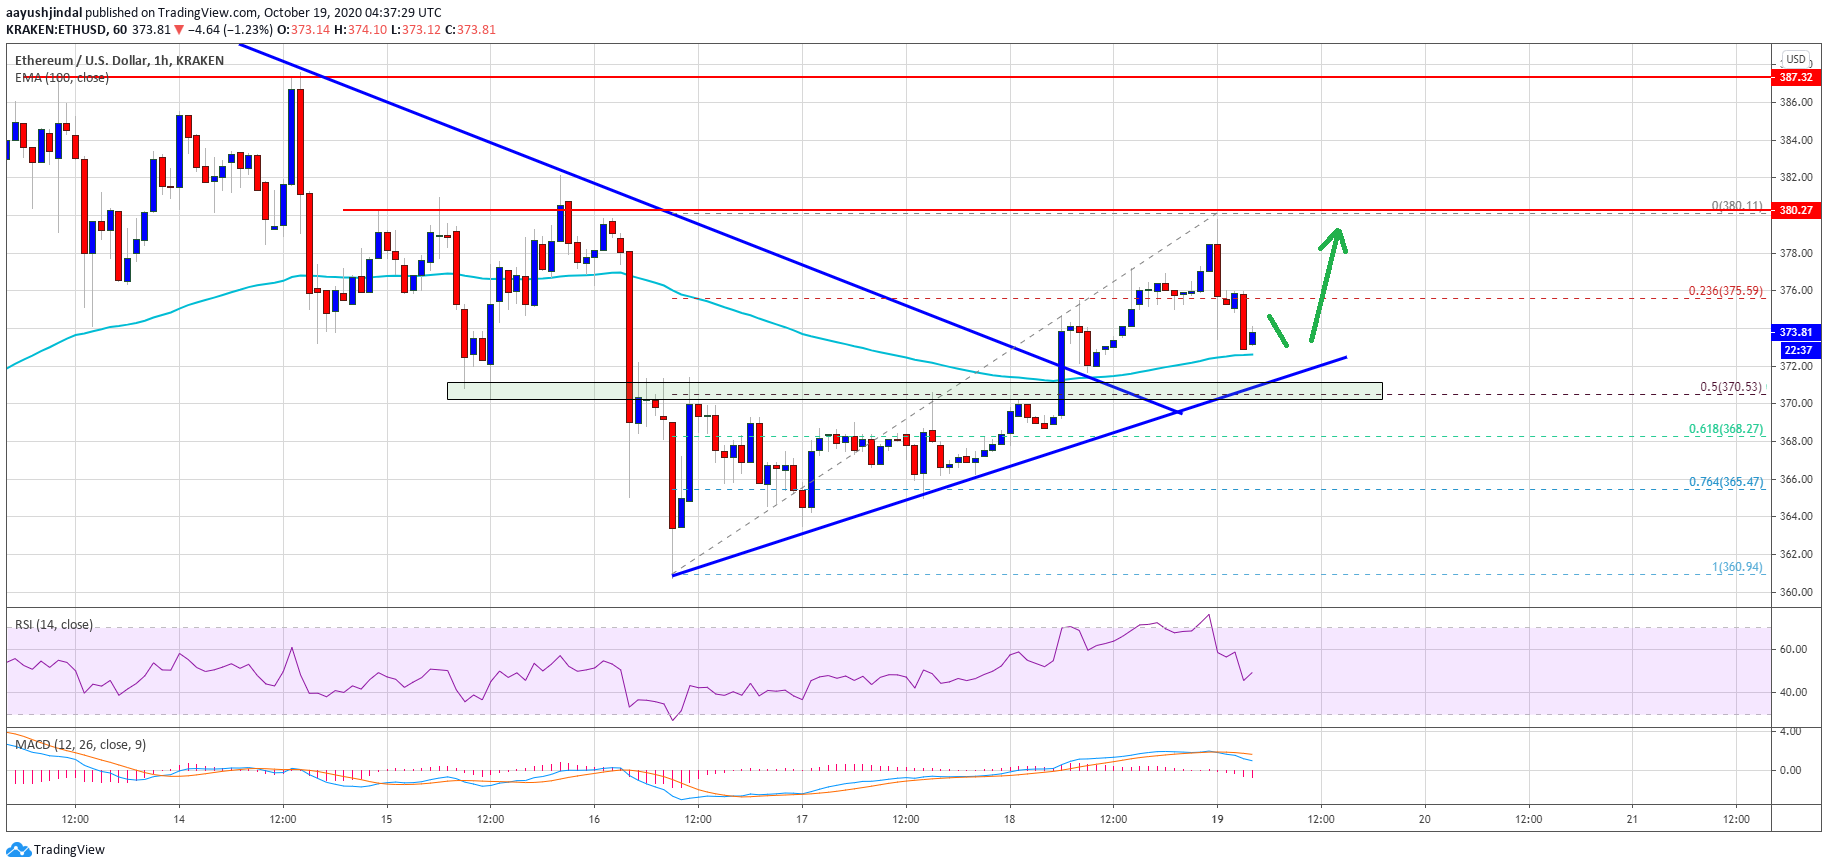 TA: Ethereum Could Narrowly Avoid a Major Drop if it Closes Above $380